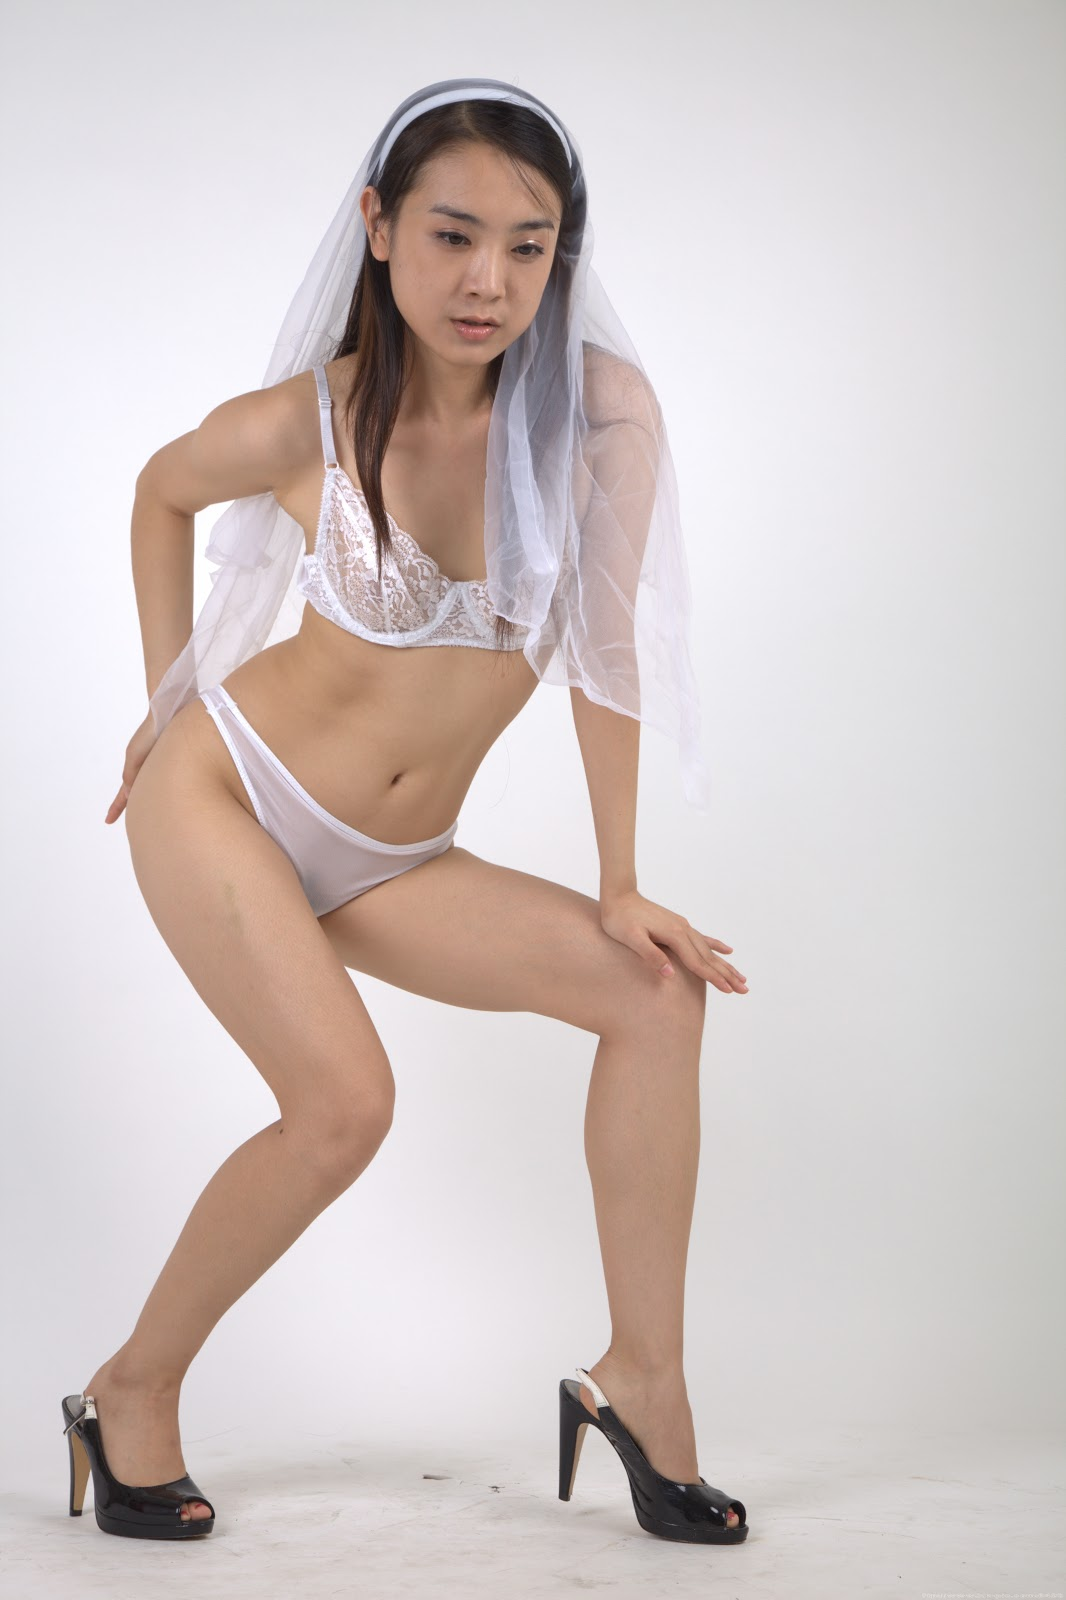 Chinese Nude_Art_Photos_-_261_-_YangYang_Vol_10.rar